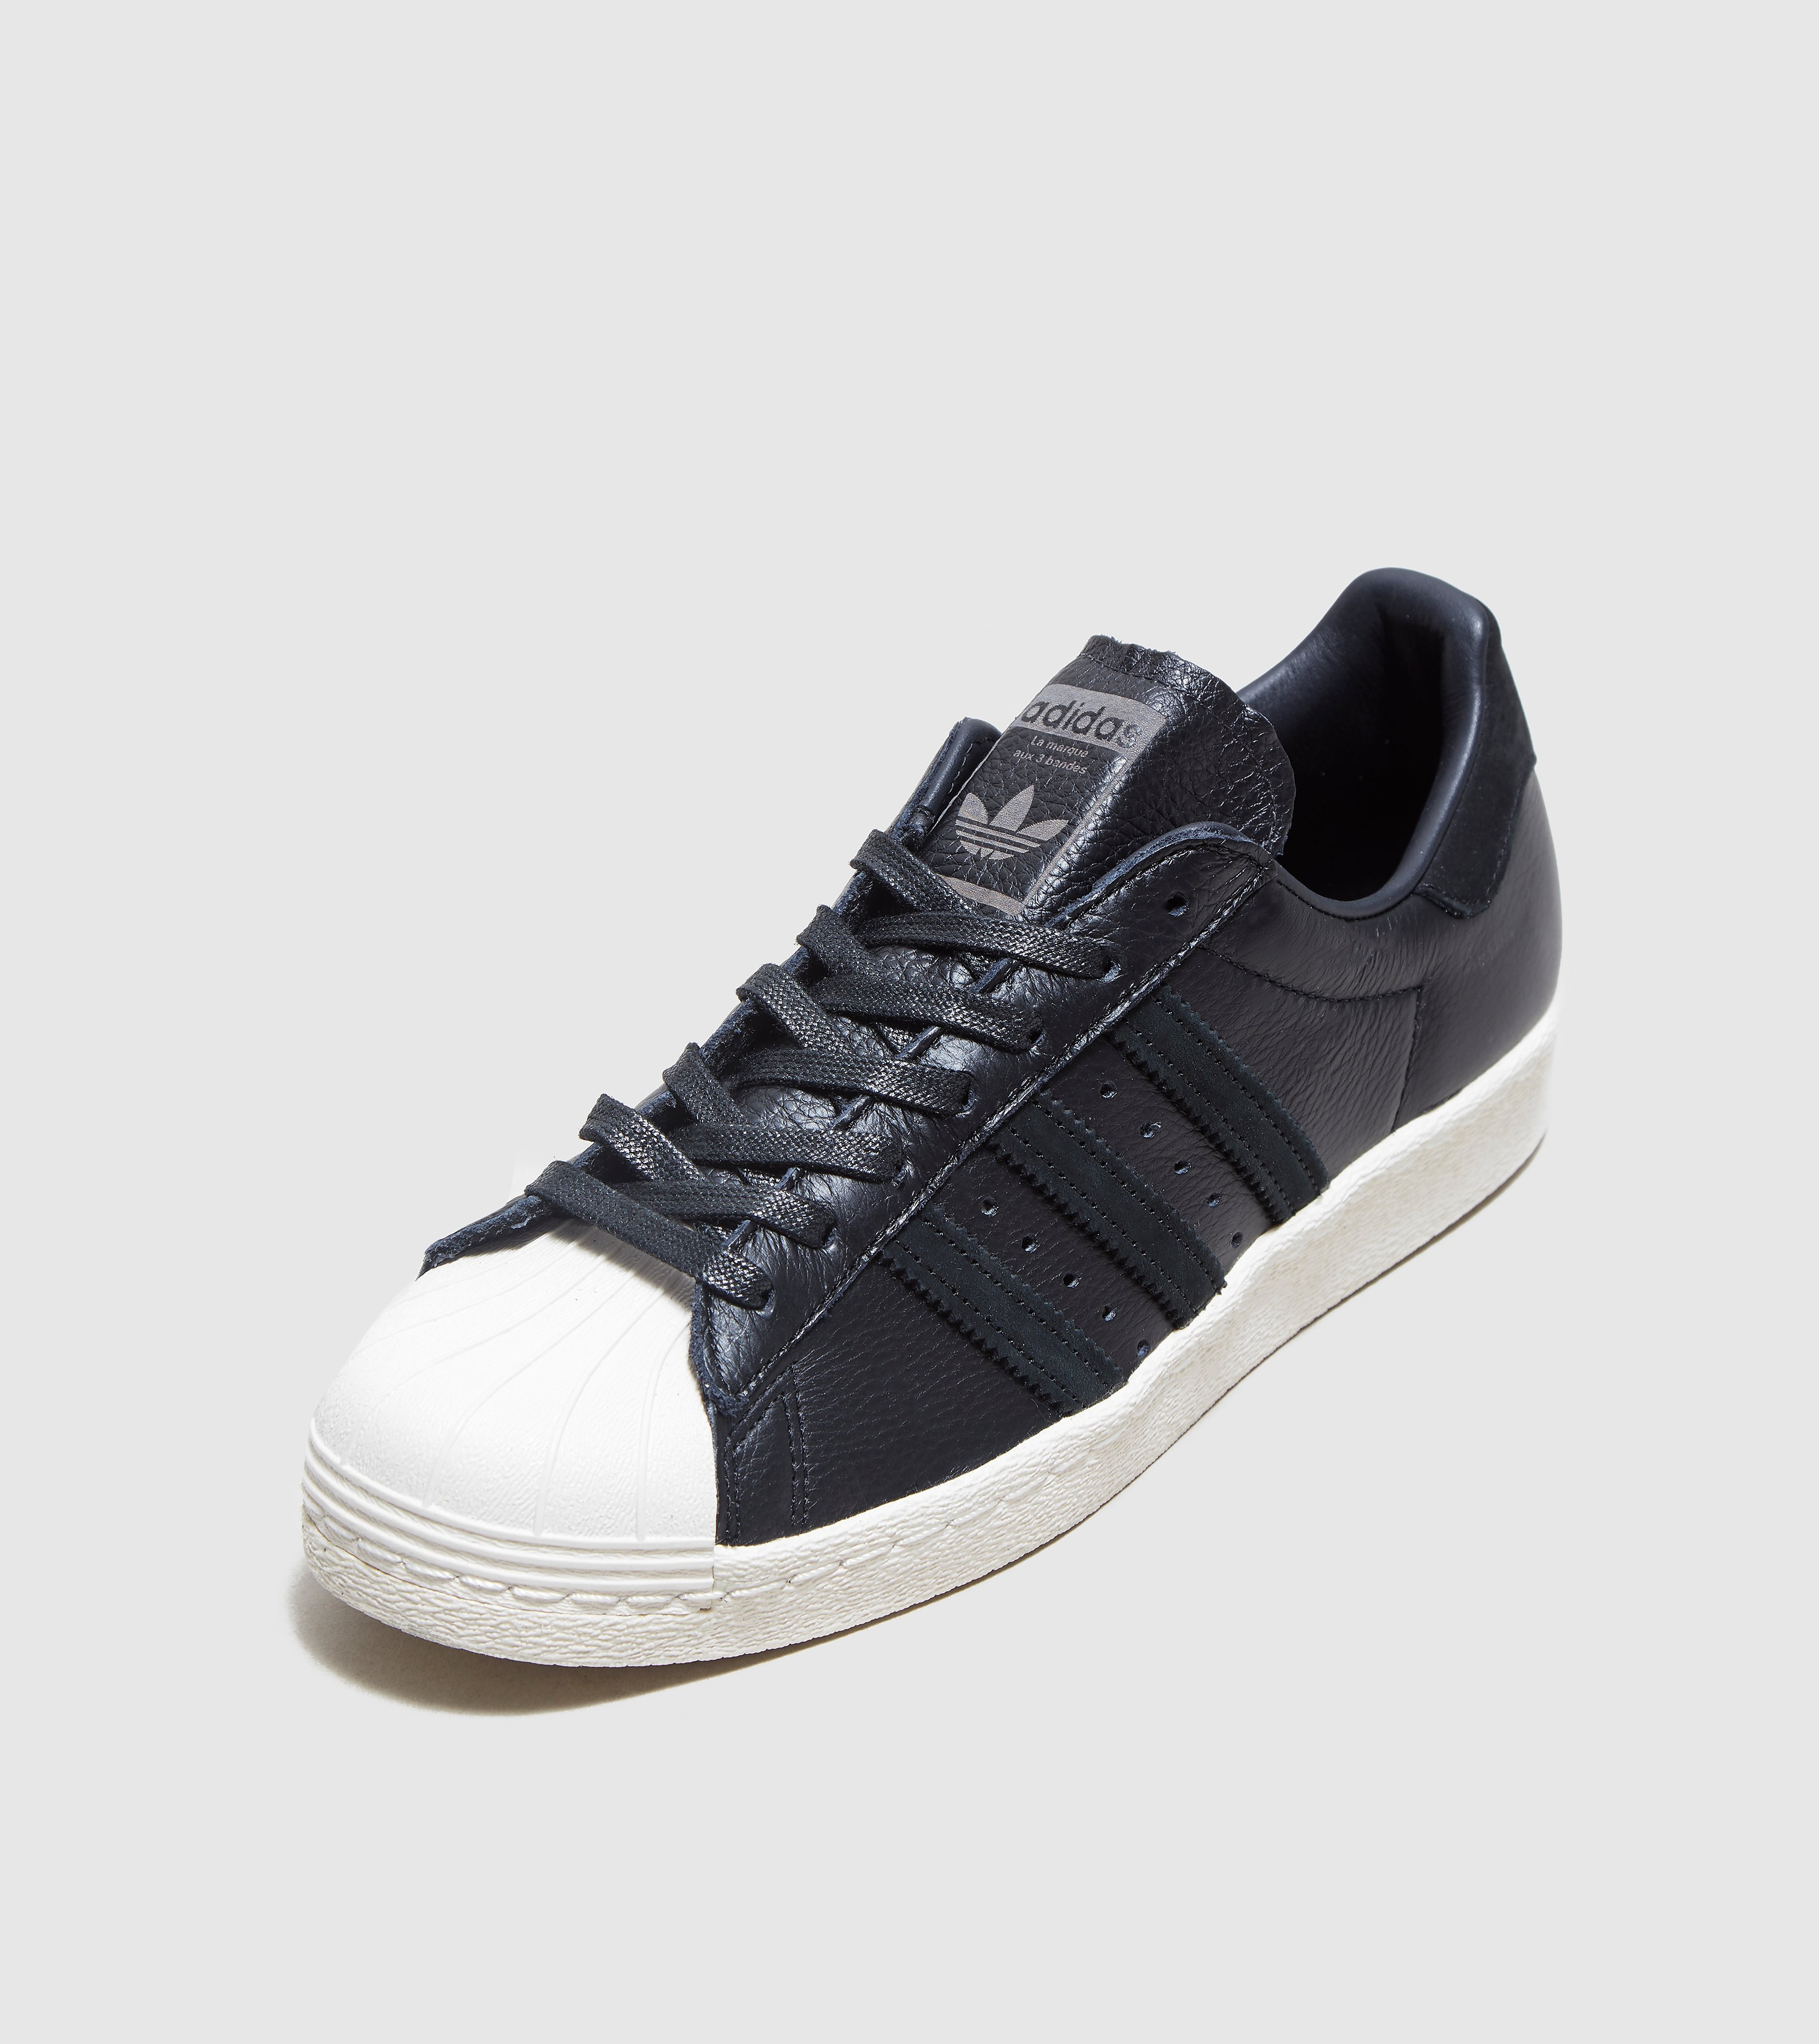 adidas Originals Superstar 80s - size? Exclusive